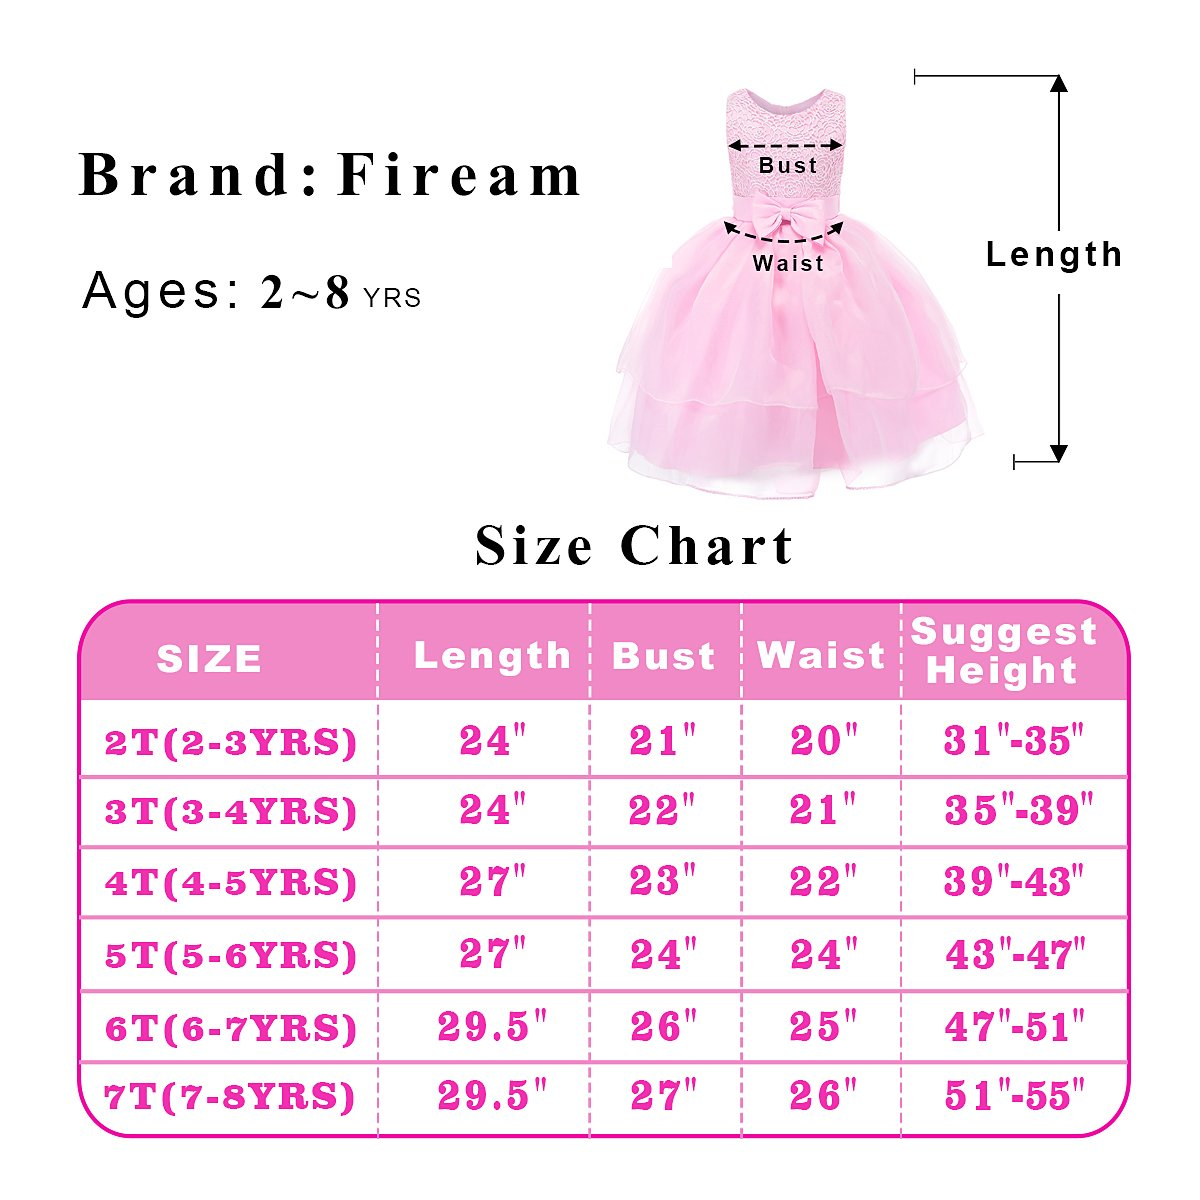 Fiream Flower Girls Dresses Tulle Sleeveless Princess Pageant Wedding Party Dresses(pink,3T/3-4YRS) by Fiream (Image #7)